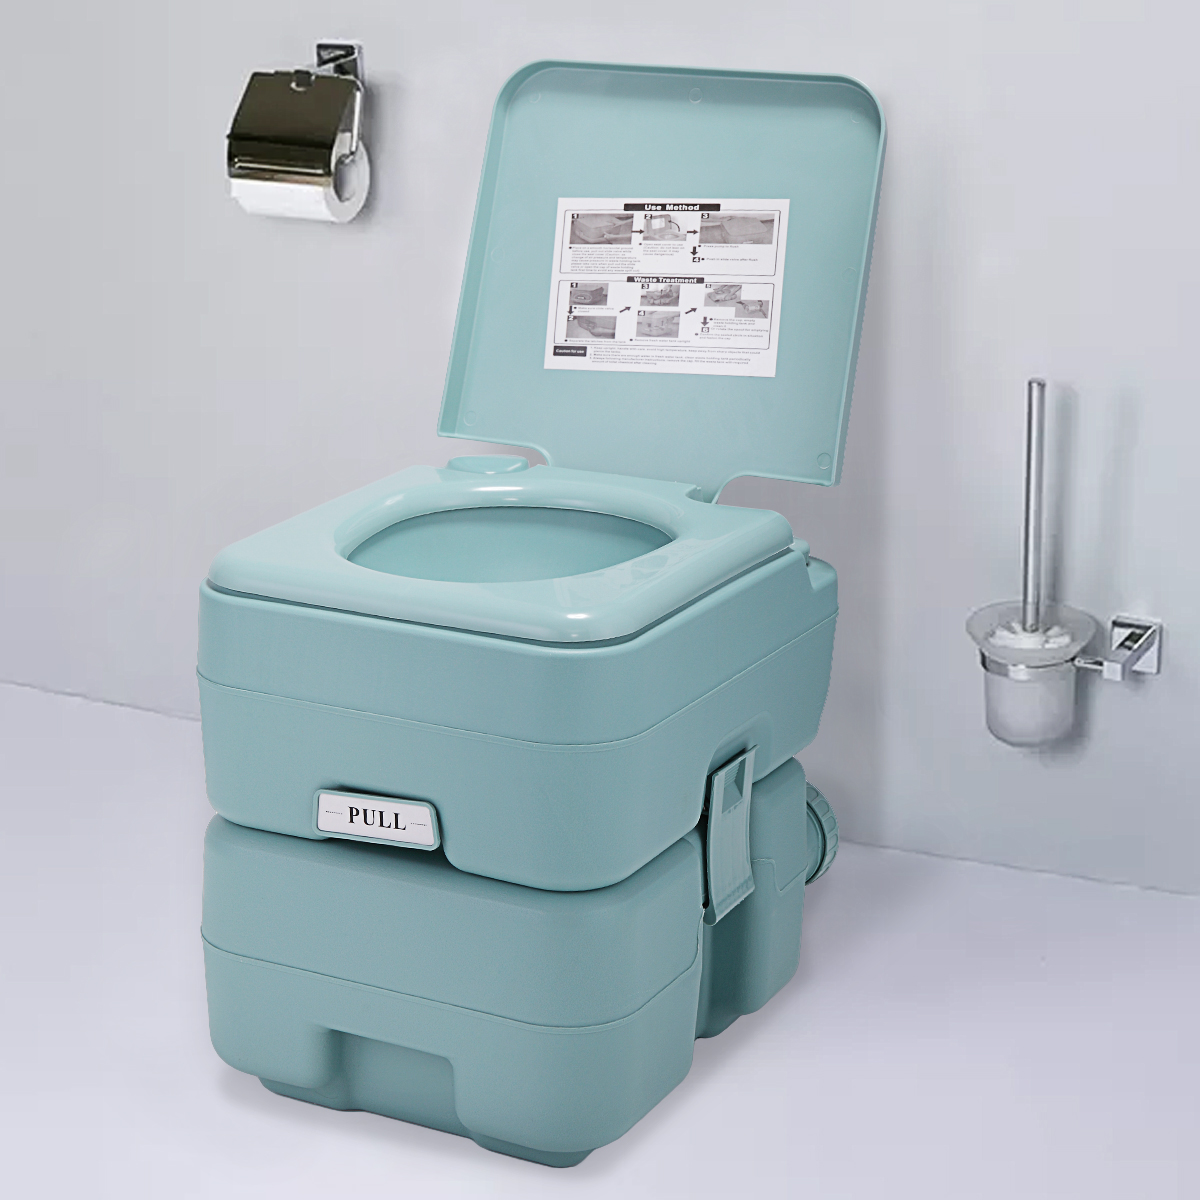 Portable Toliet 5 Gallon 20L Outdoor Camping Toilet Potty, Greenish Gray